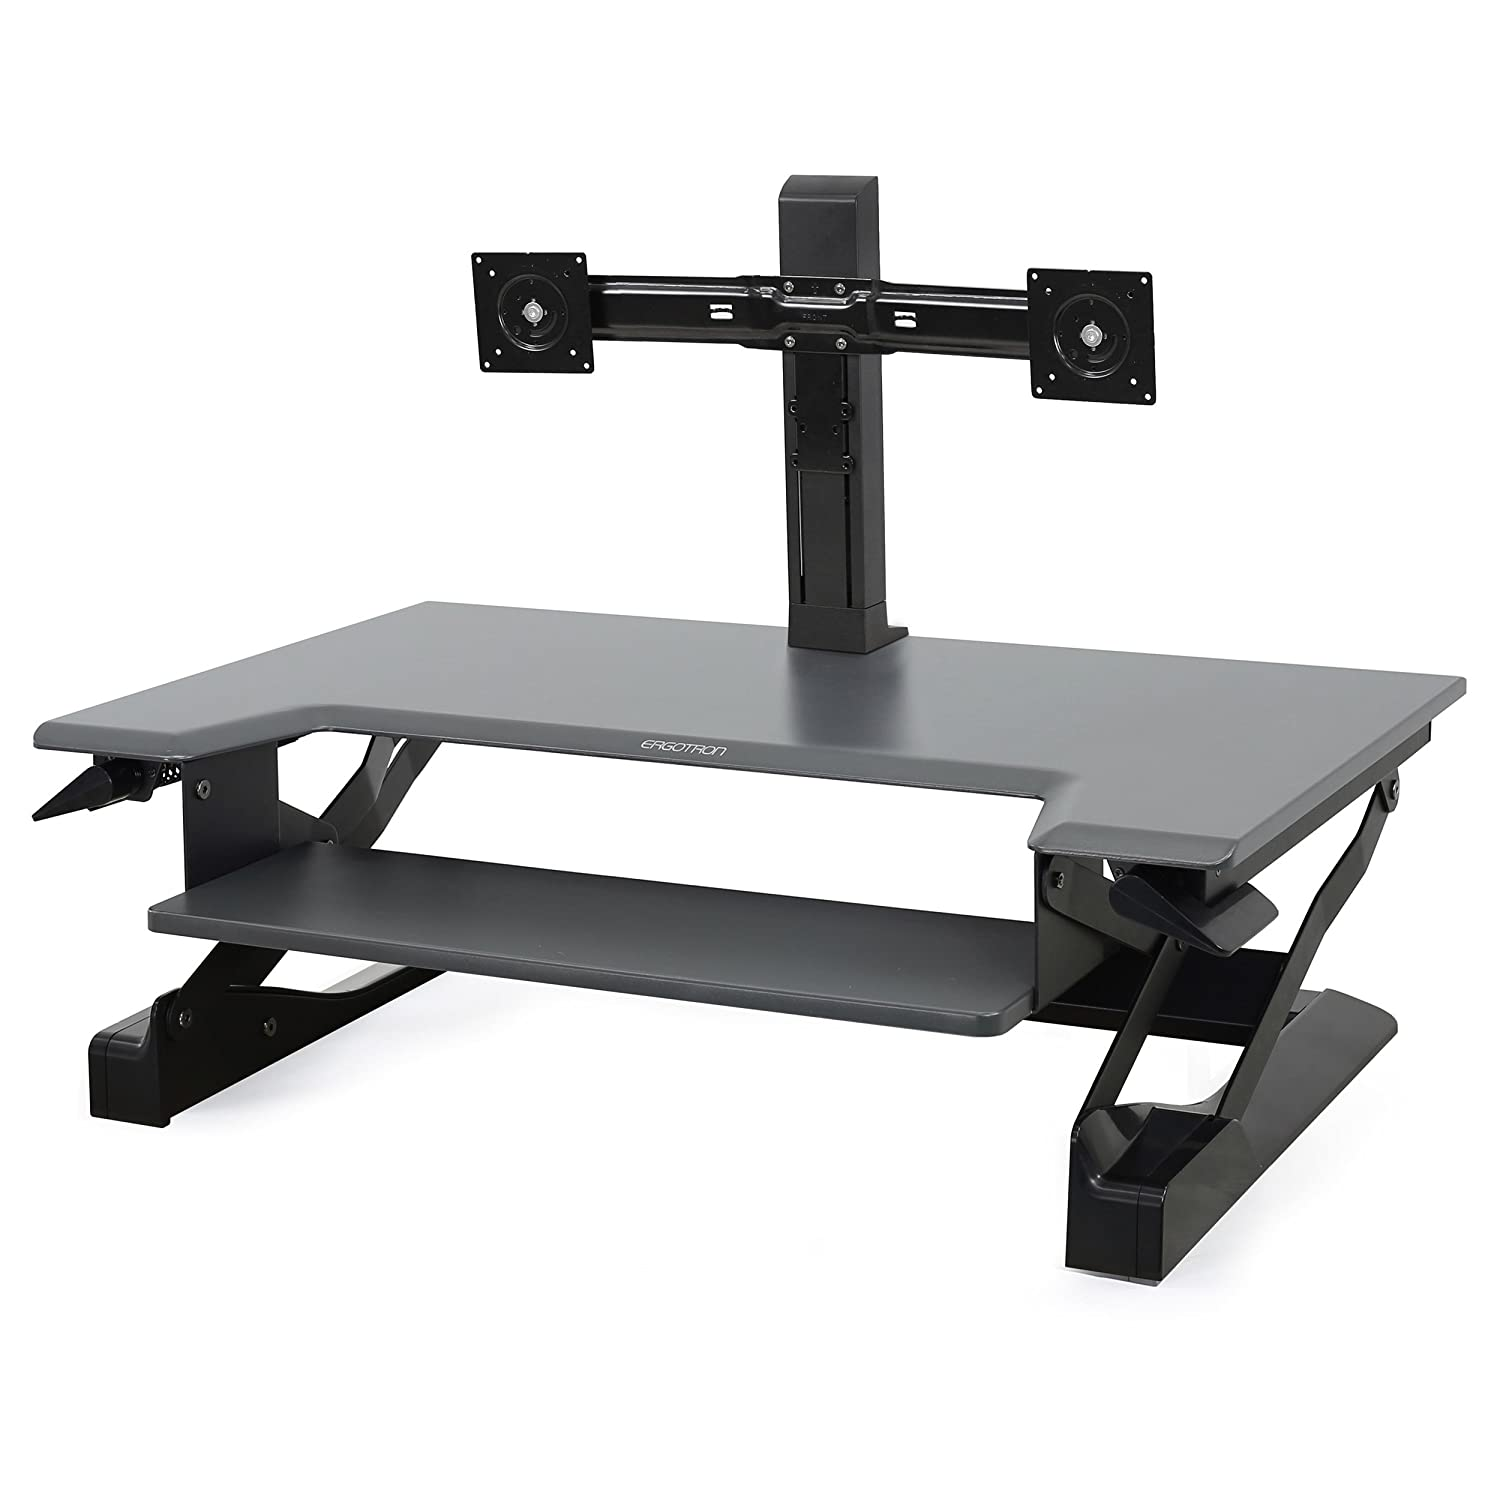 Ergotron WorkFit Dual Monitor Kit Stand SYNNEX Canada Ltd 97-904